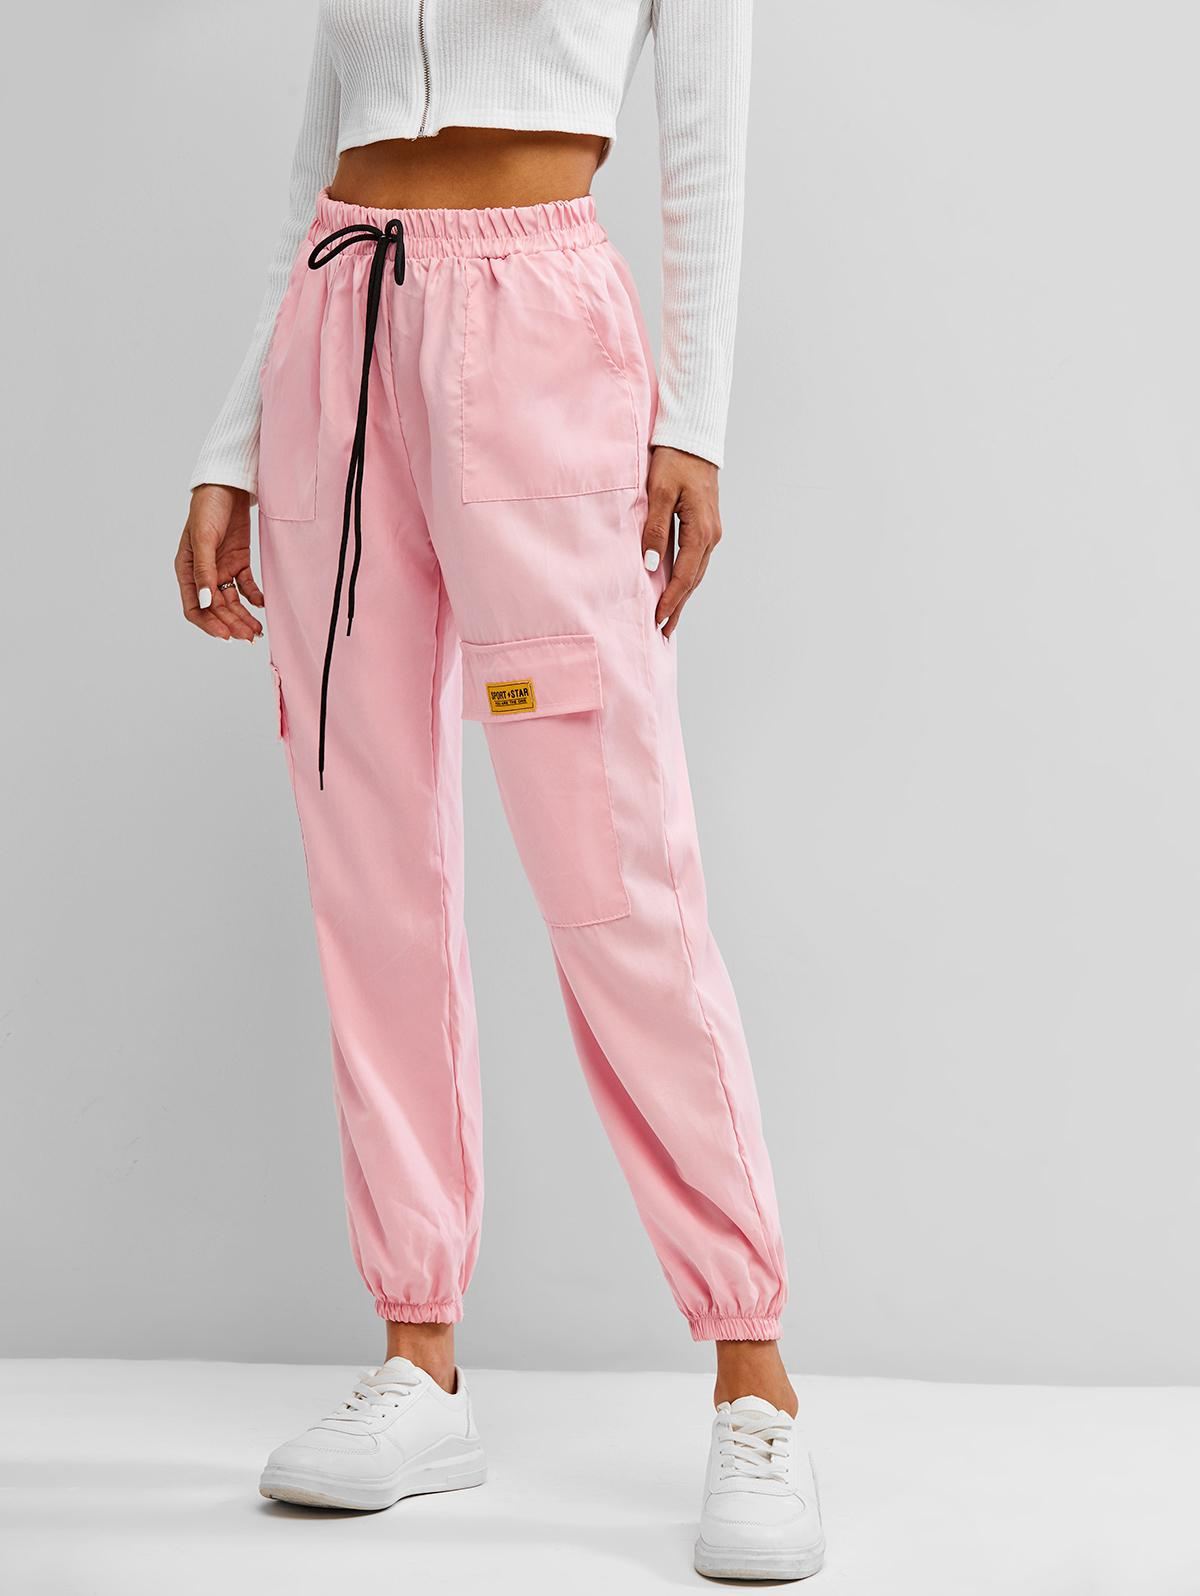 Letter Applique Bowknot Detail Cargo Pants, ZAFUL  - buy with discount